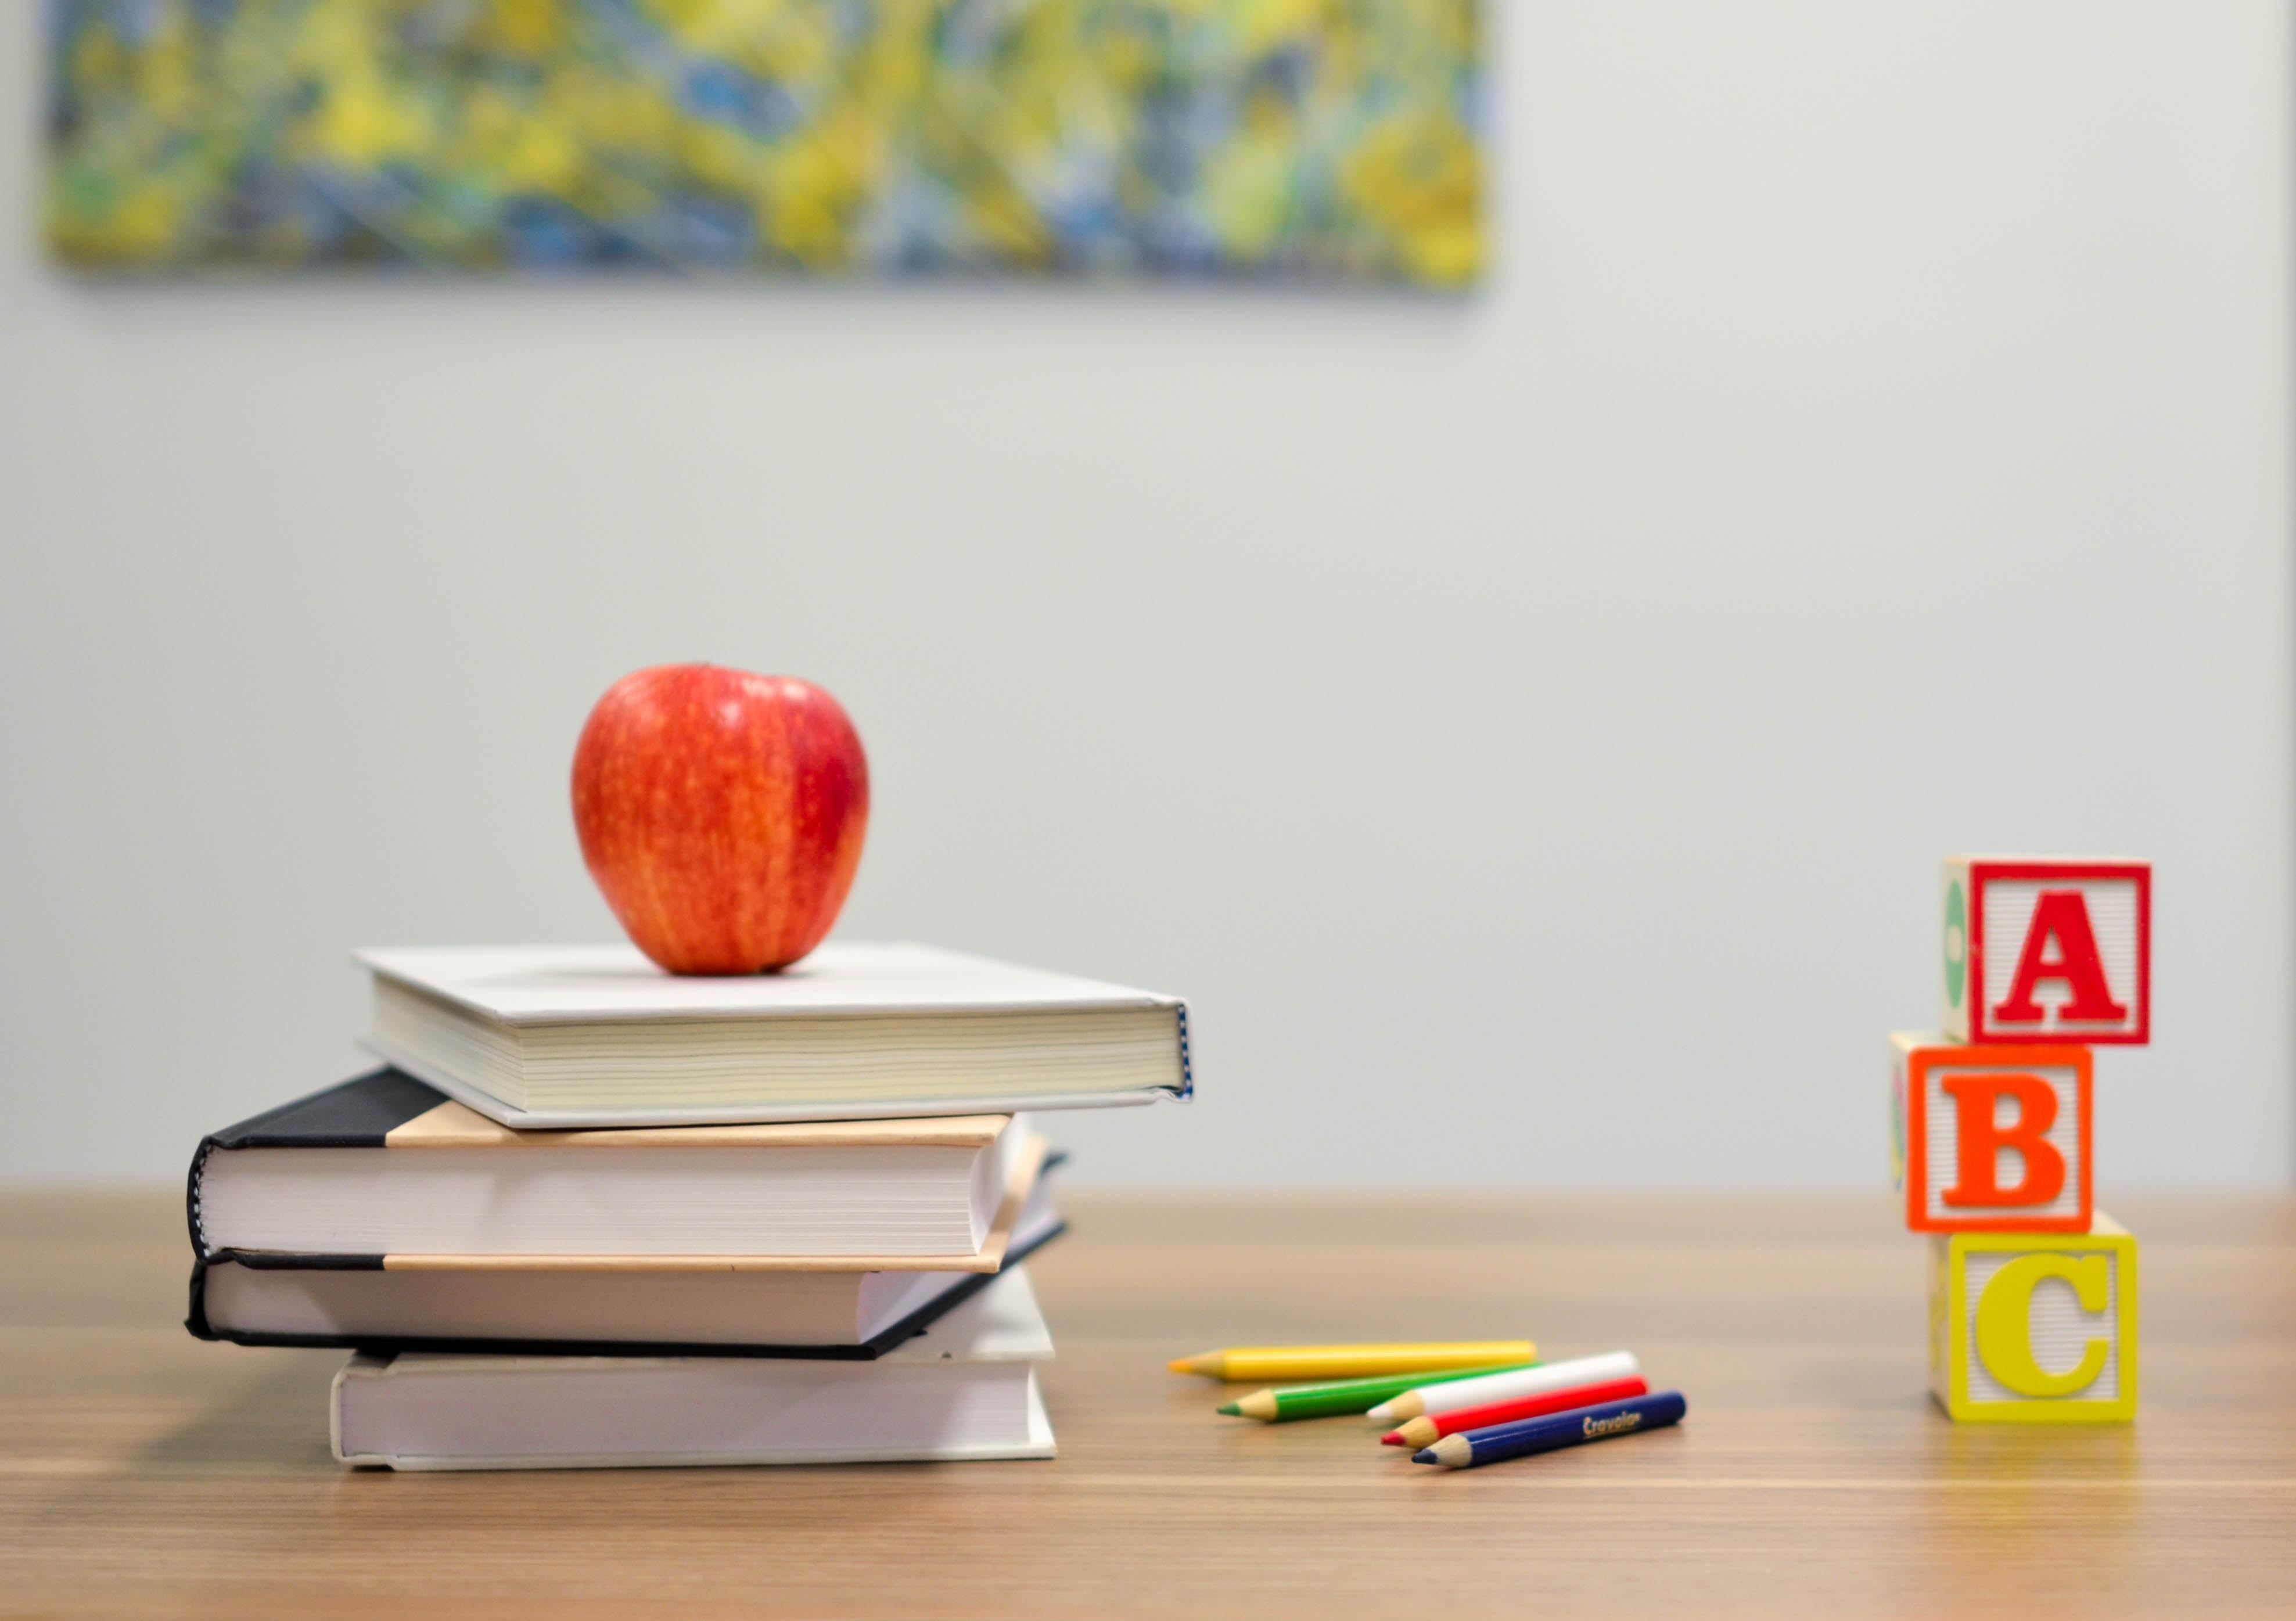 an apple sits on top of a stack of books next to a pile of colored pencils and ABC blocks